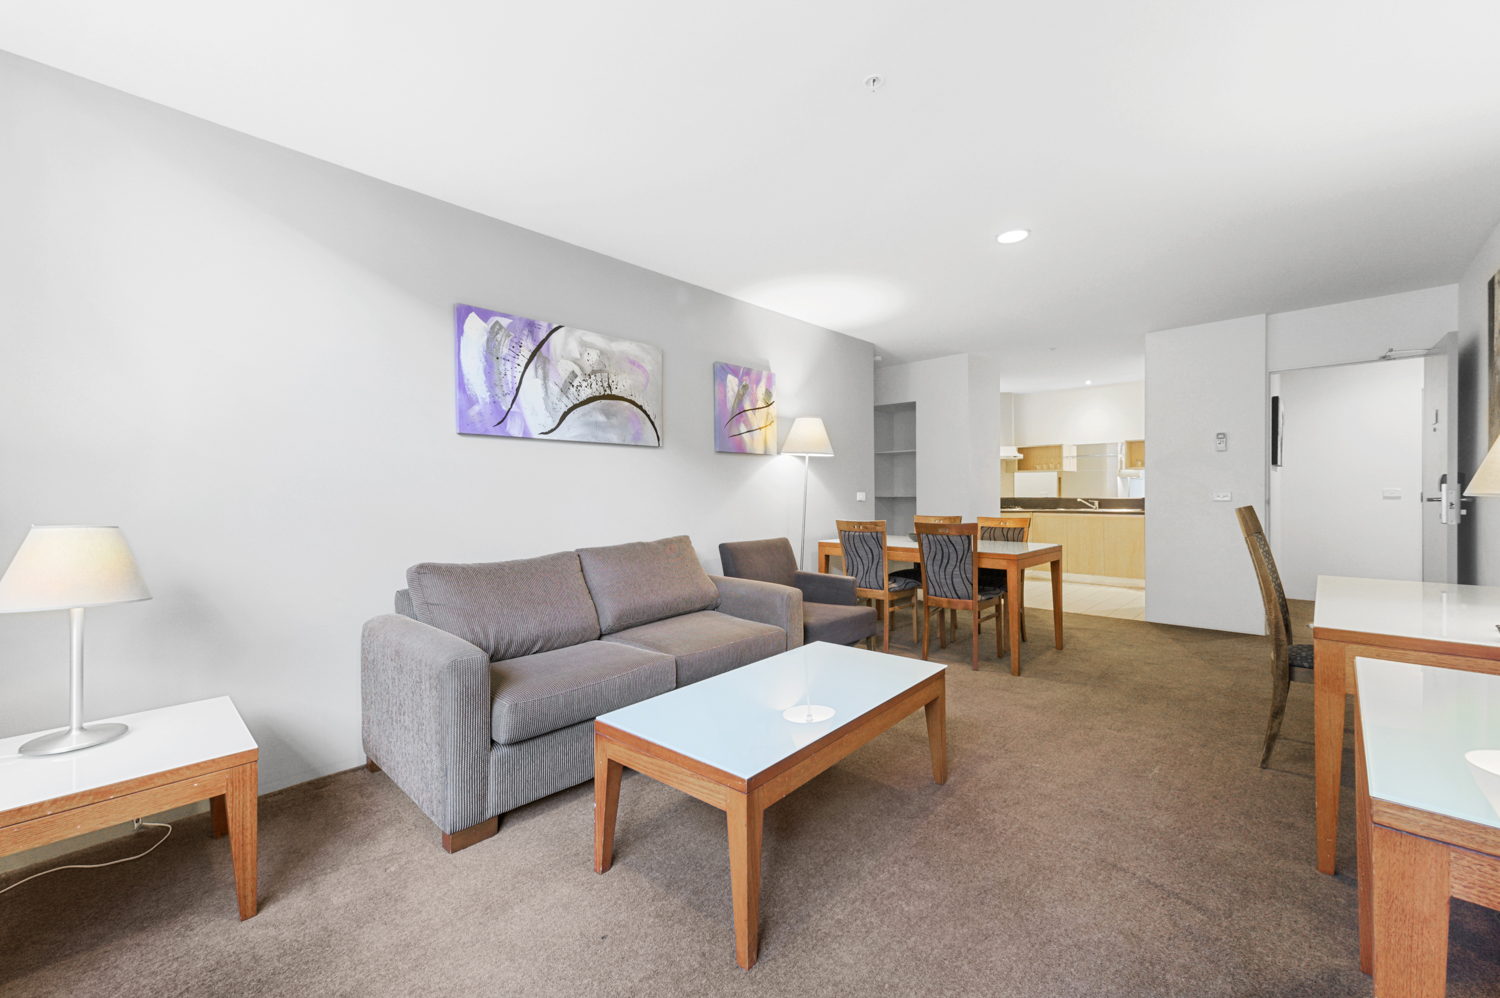 307-604-st-kilda-road-melbourne-student-accommodation-Melbourne-Unilodgers